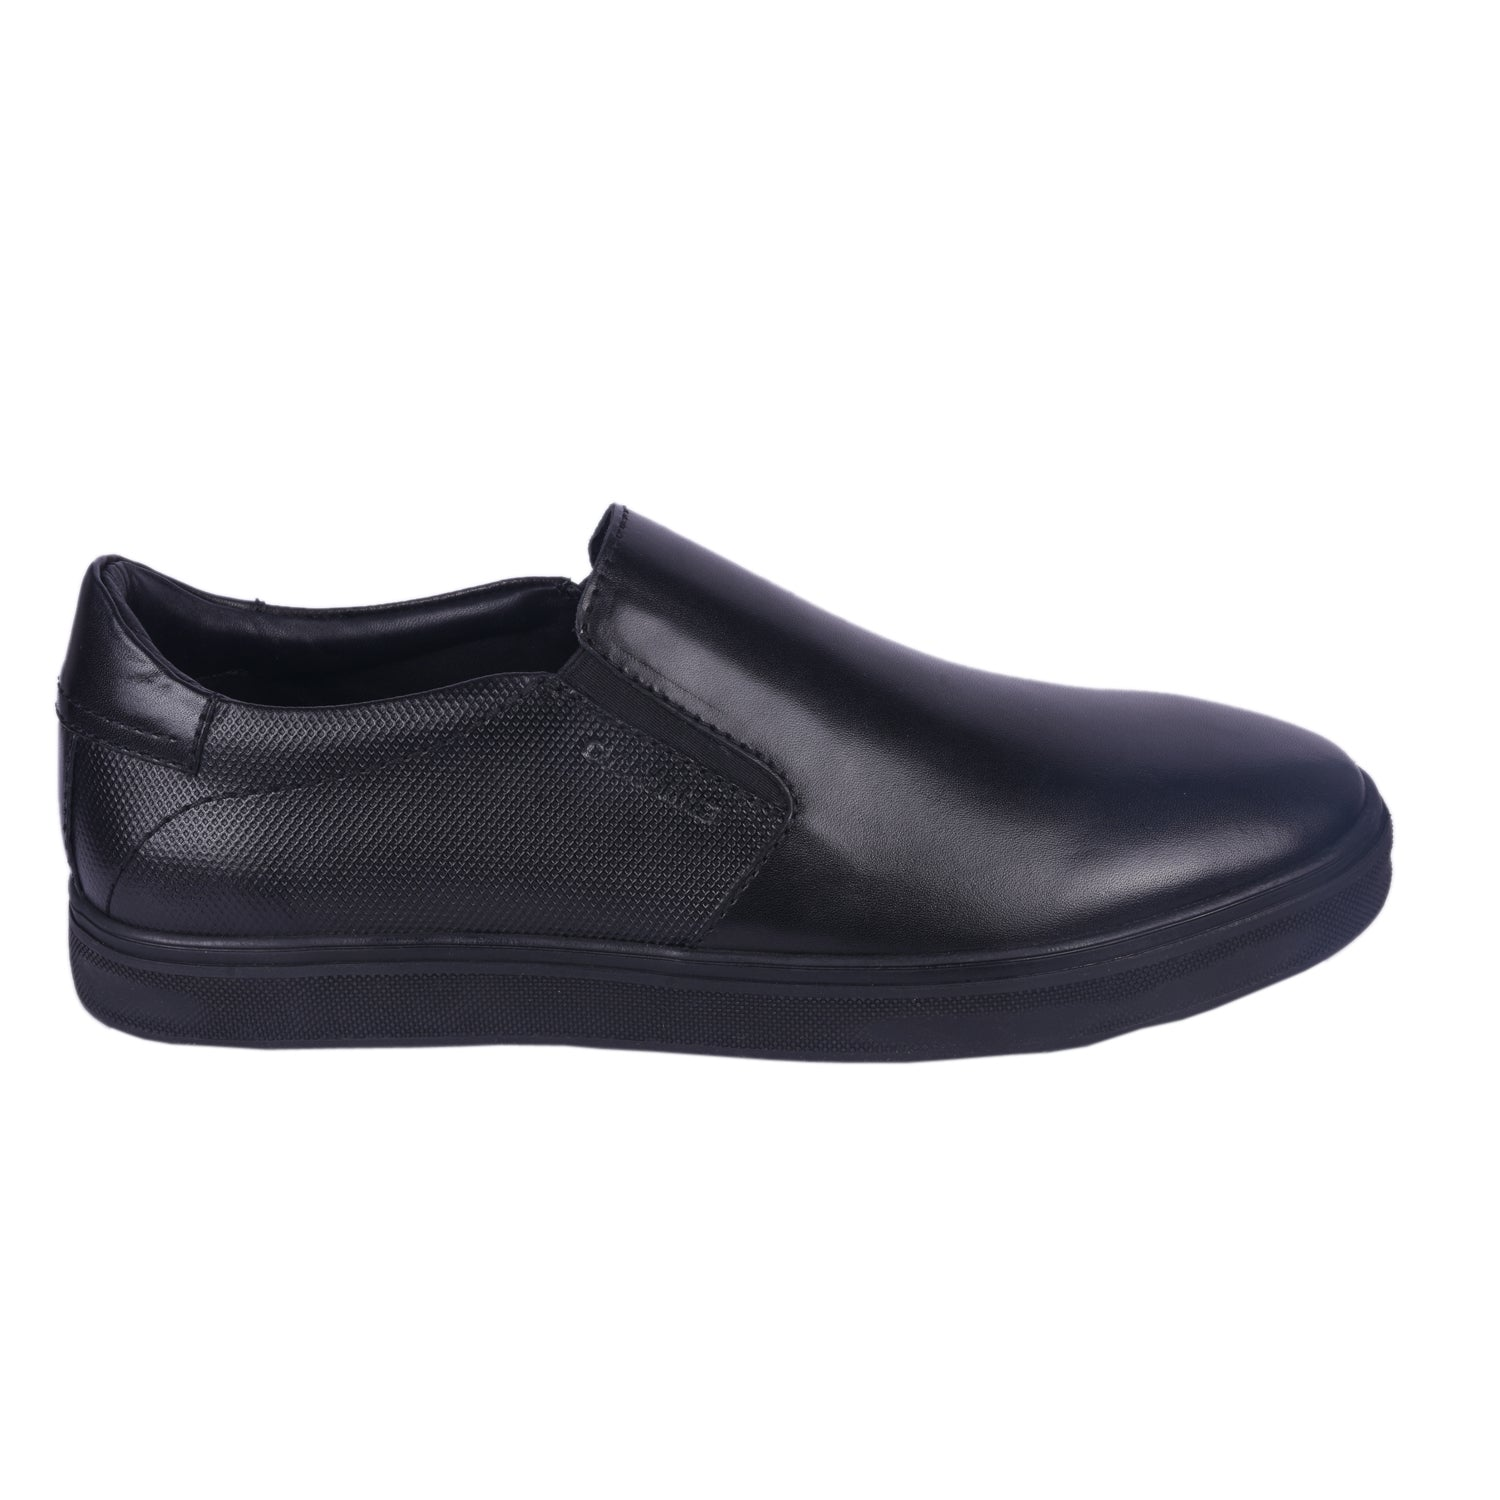 Step Up Charcoal Slip-on Shoe.